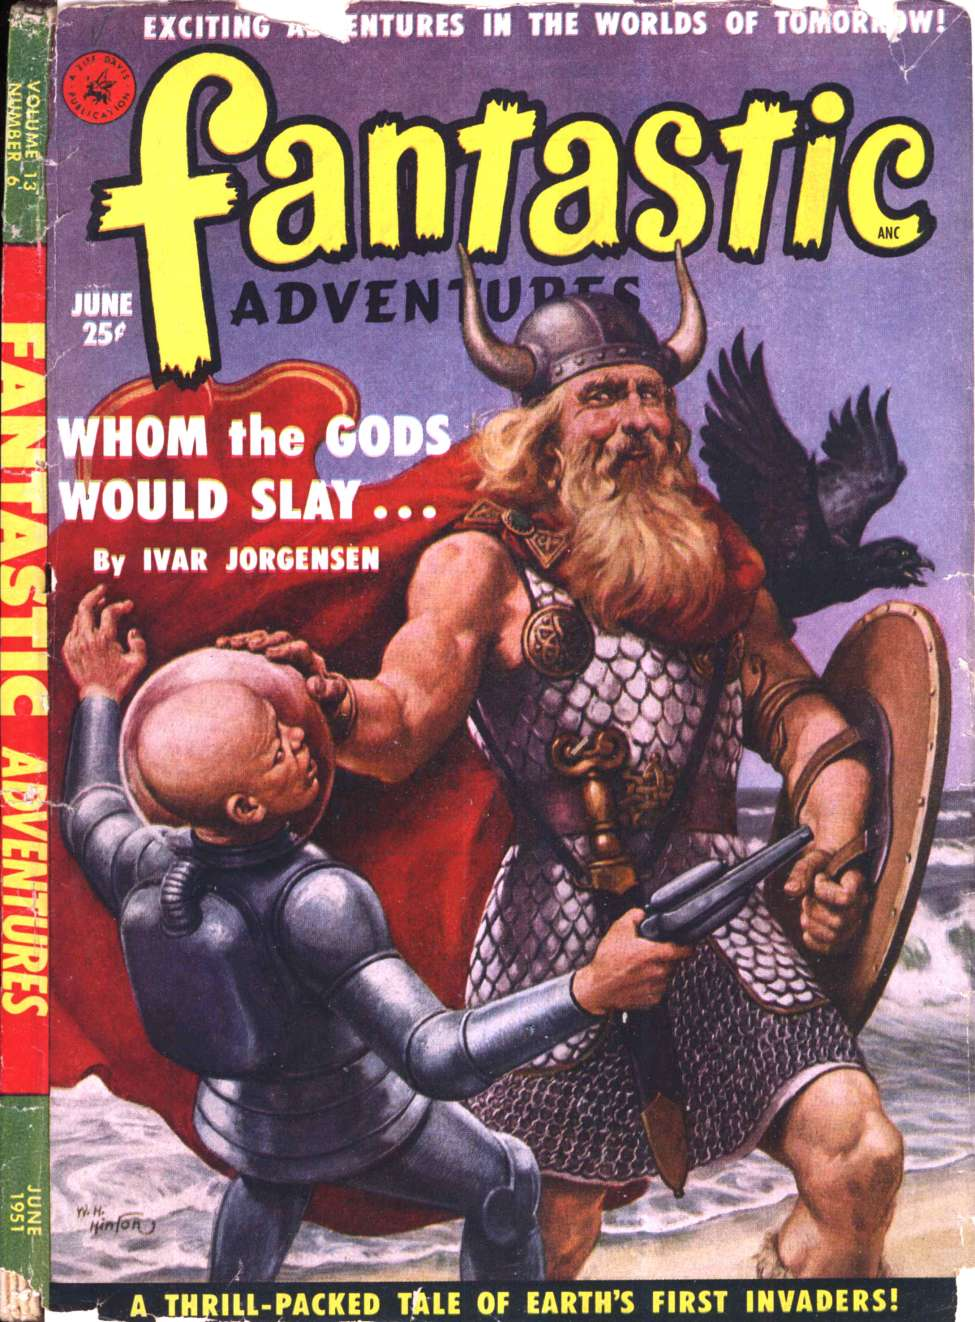 Comic Book Cover For Fantastic Adventures v13 06 - Whom the Gods Would Slay - Ivar Jorgensen